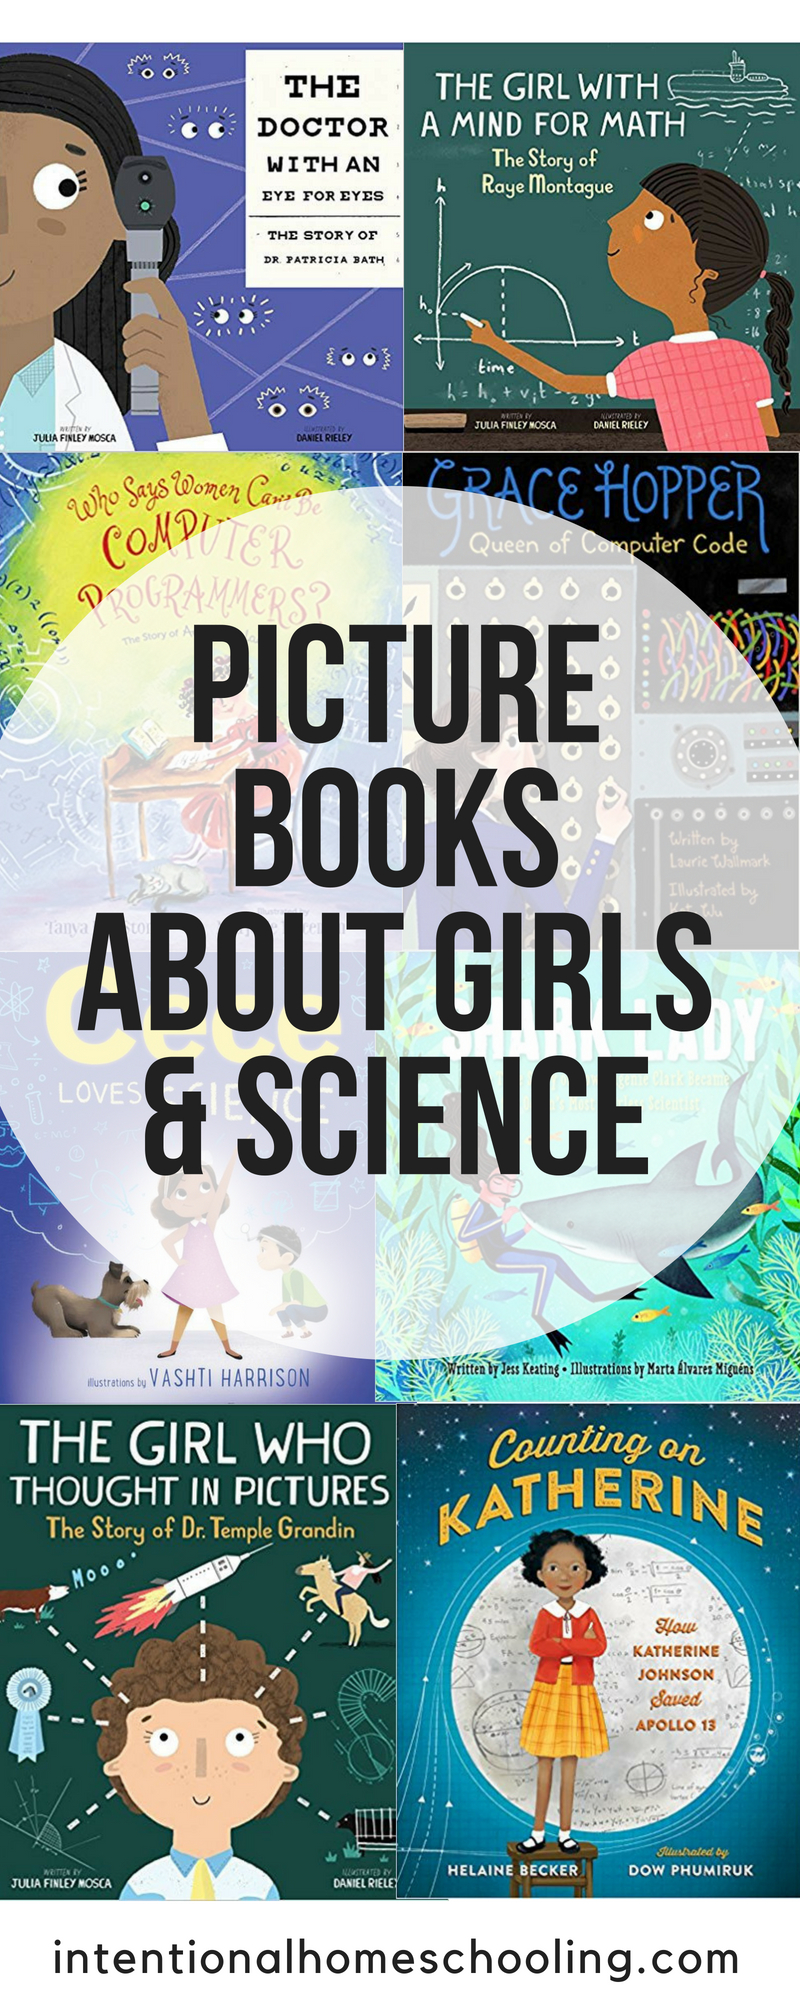 The best picture books about girls and science - a great list of picture book biographies of women scientists and more!